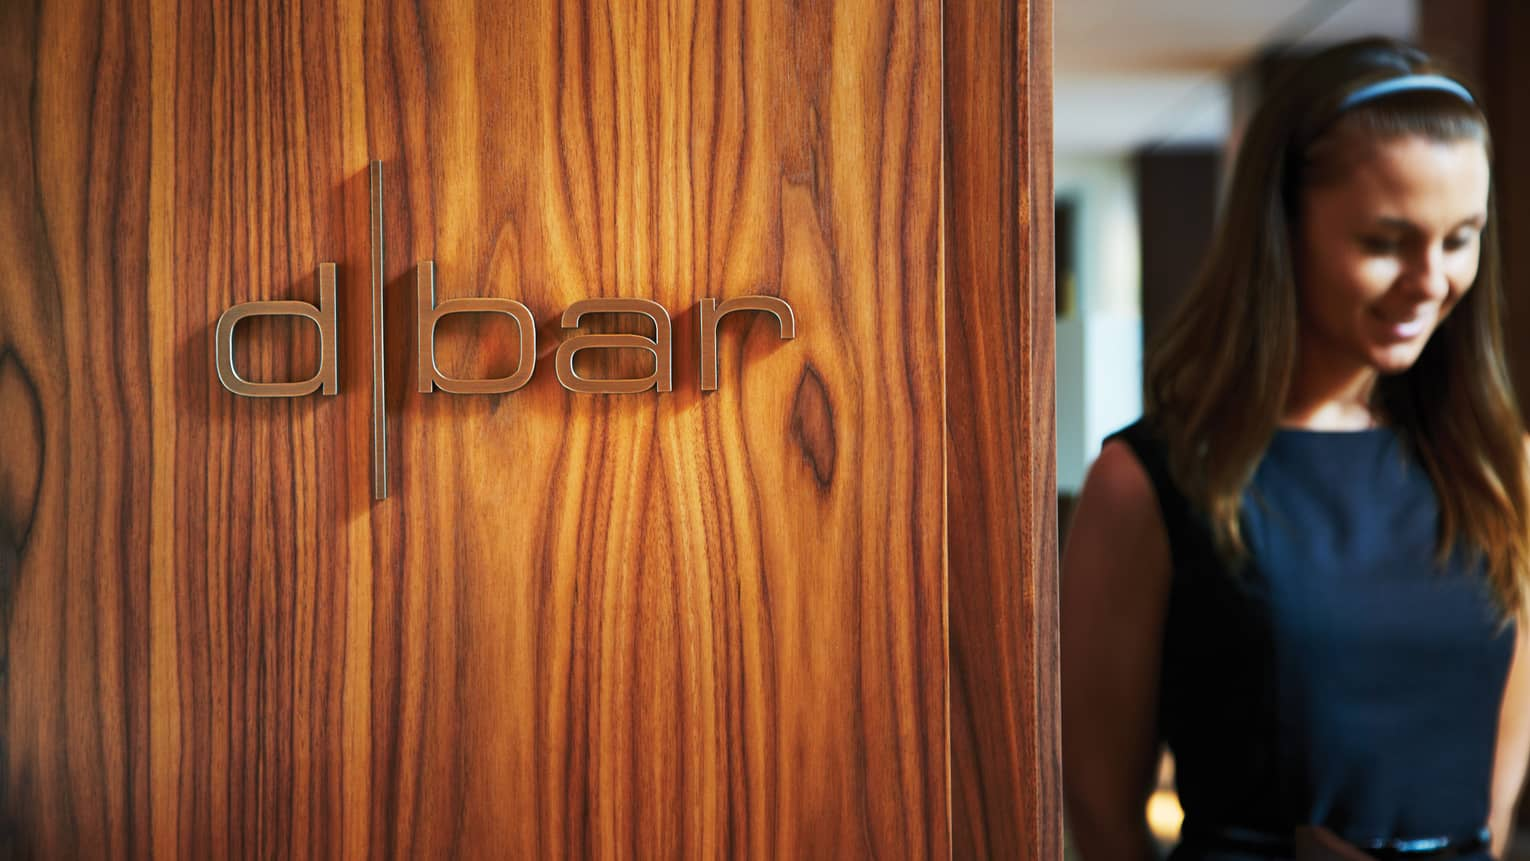 Woman walks through doorway beside wood wall with Dbar sign